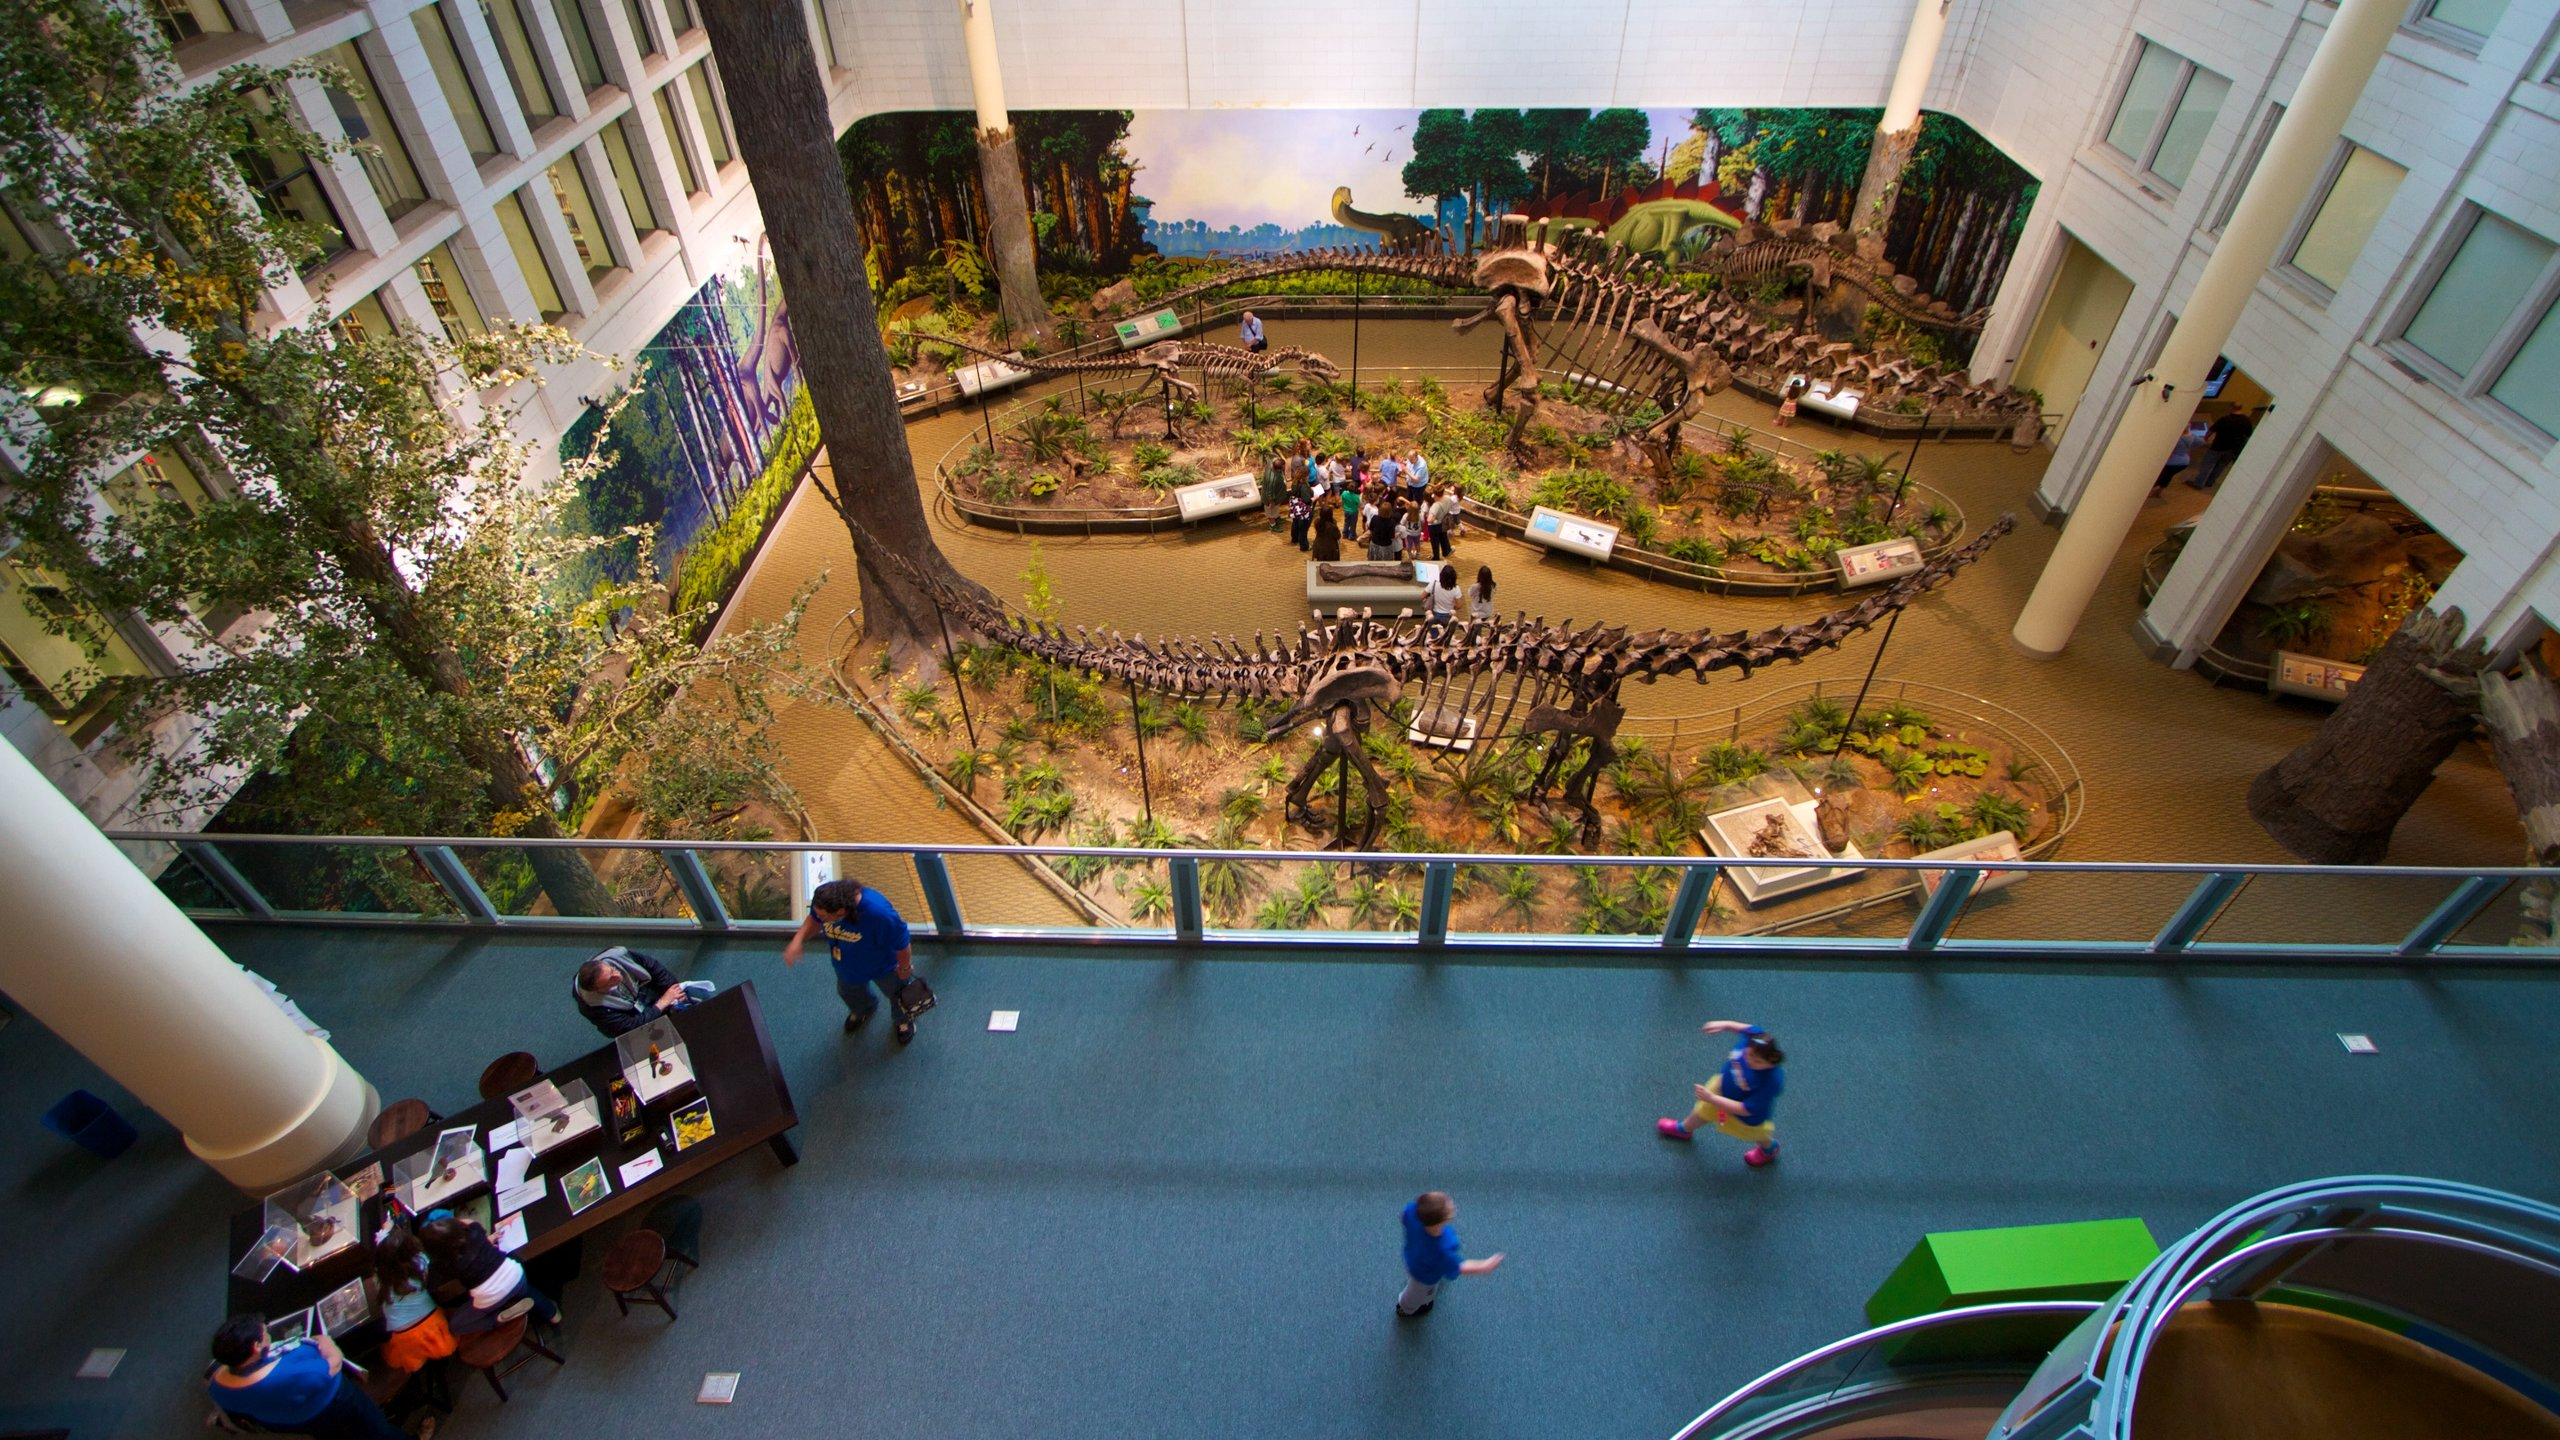 Carnegie Museum of Natural History, Pittsburgh, Pennsylvania, United States of America